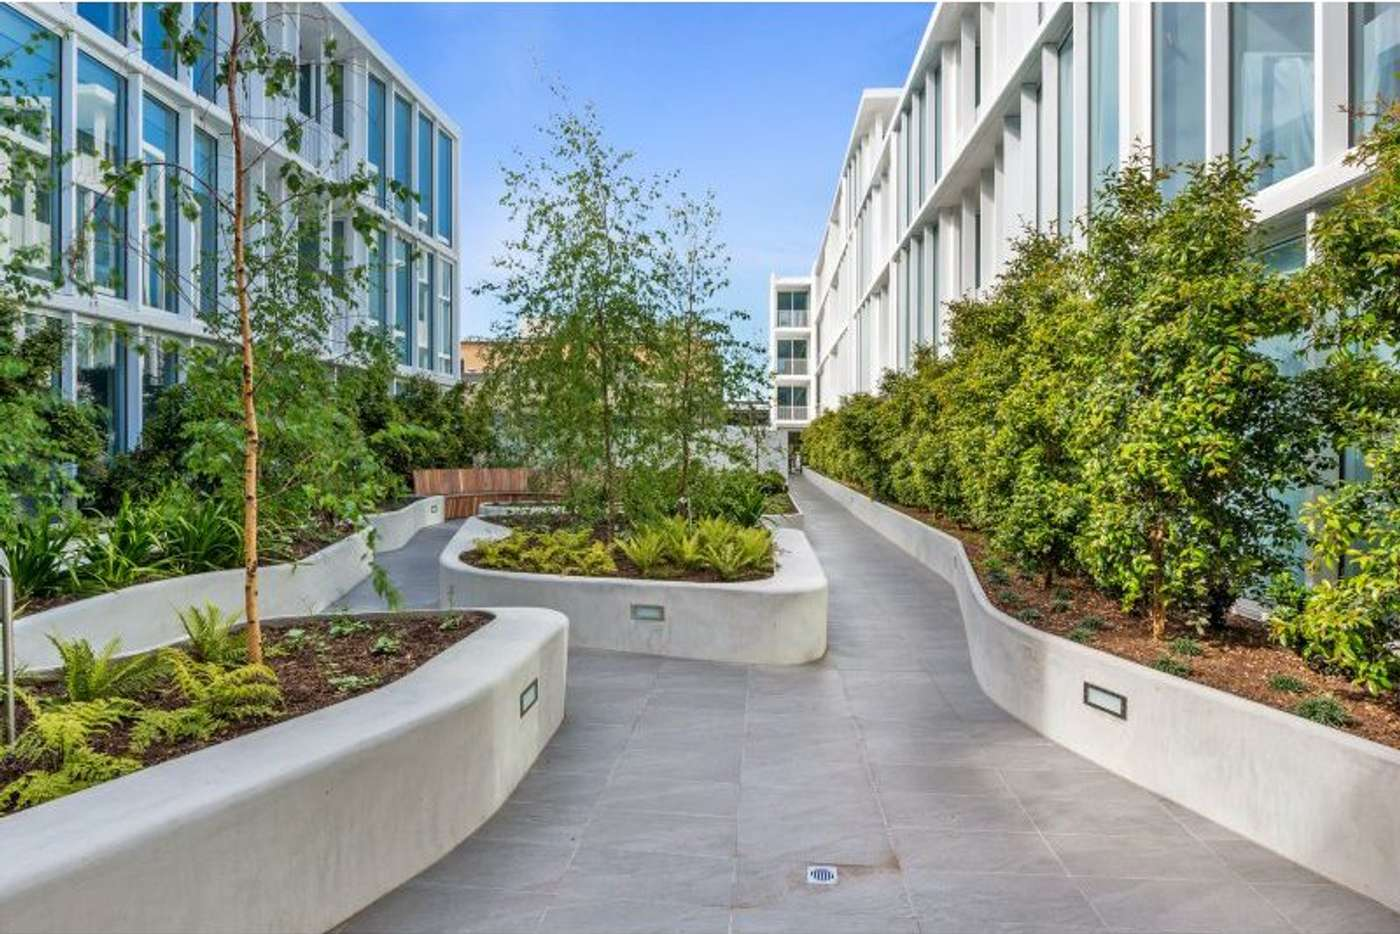 Main view of Homely apartment listing, 122/209-211 Bay Street, Brighton VIC 3186